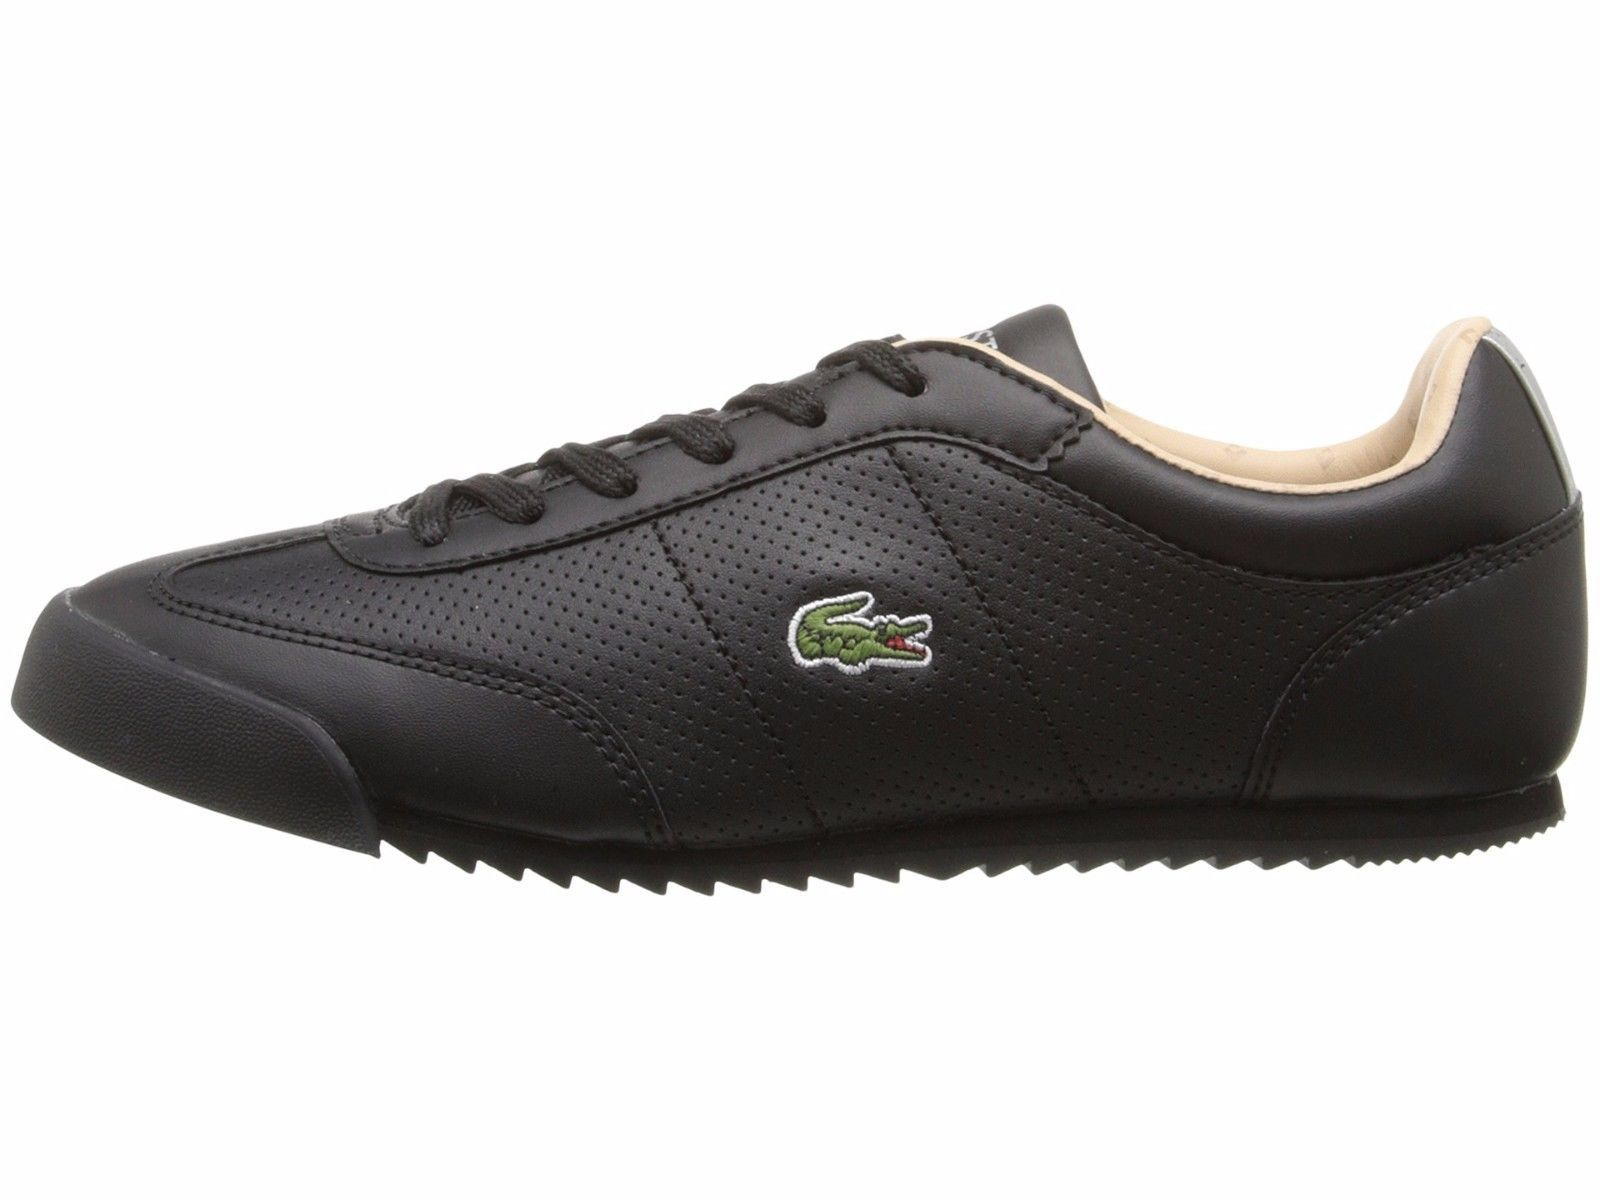 36f9330f9 Lacoste Romeau Piq3 Womens shoes and 50 similar items